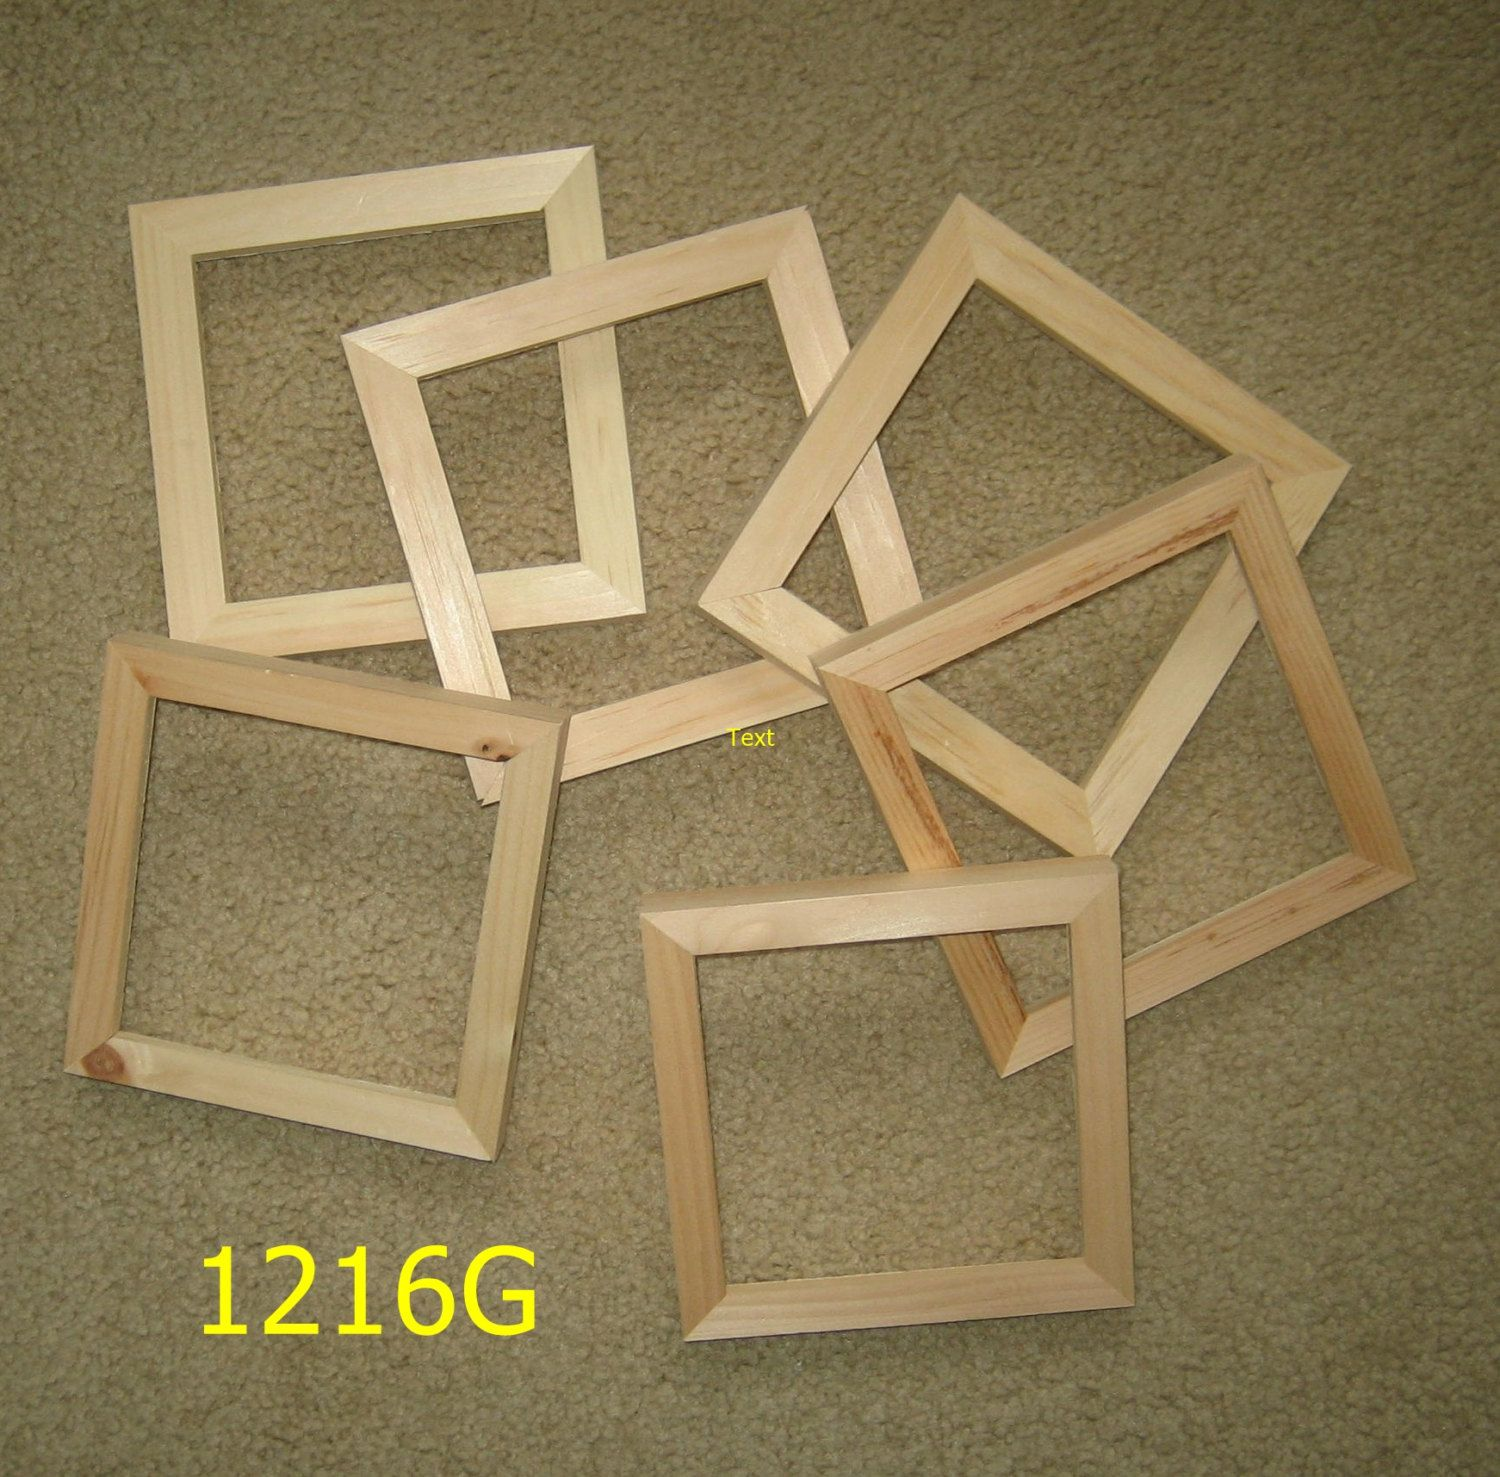 6 square 5x5 unfinished wood picture frames (my no.1216G)